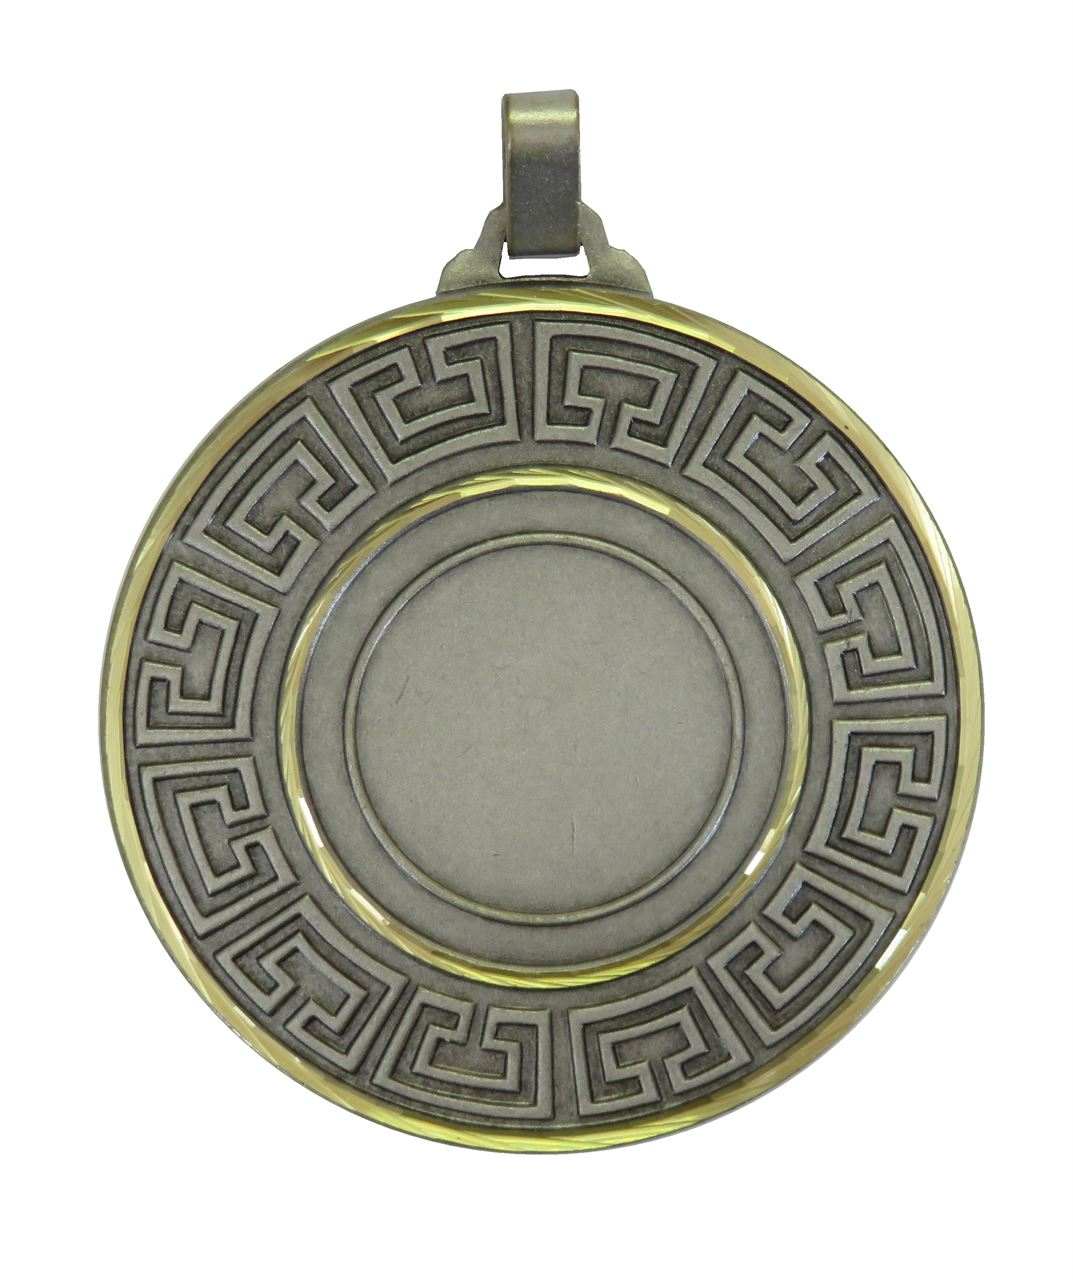 Silver Faceted Athena Medal (sizes: 60mm) - 5555F